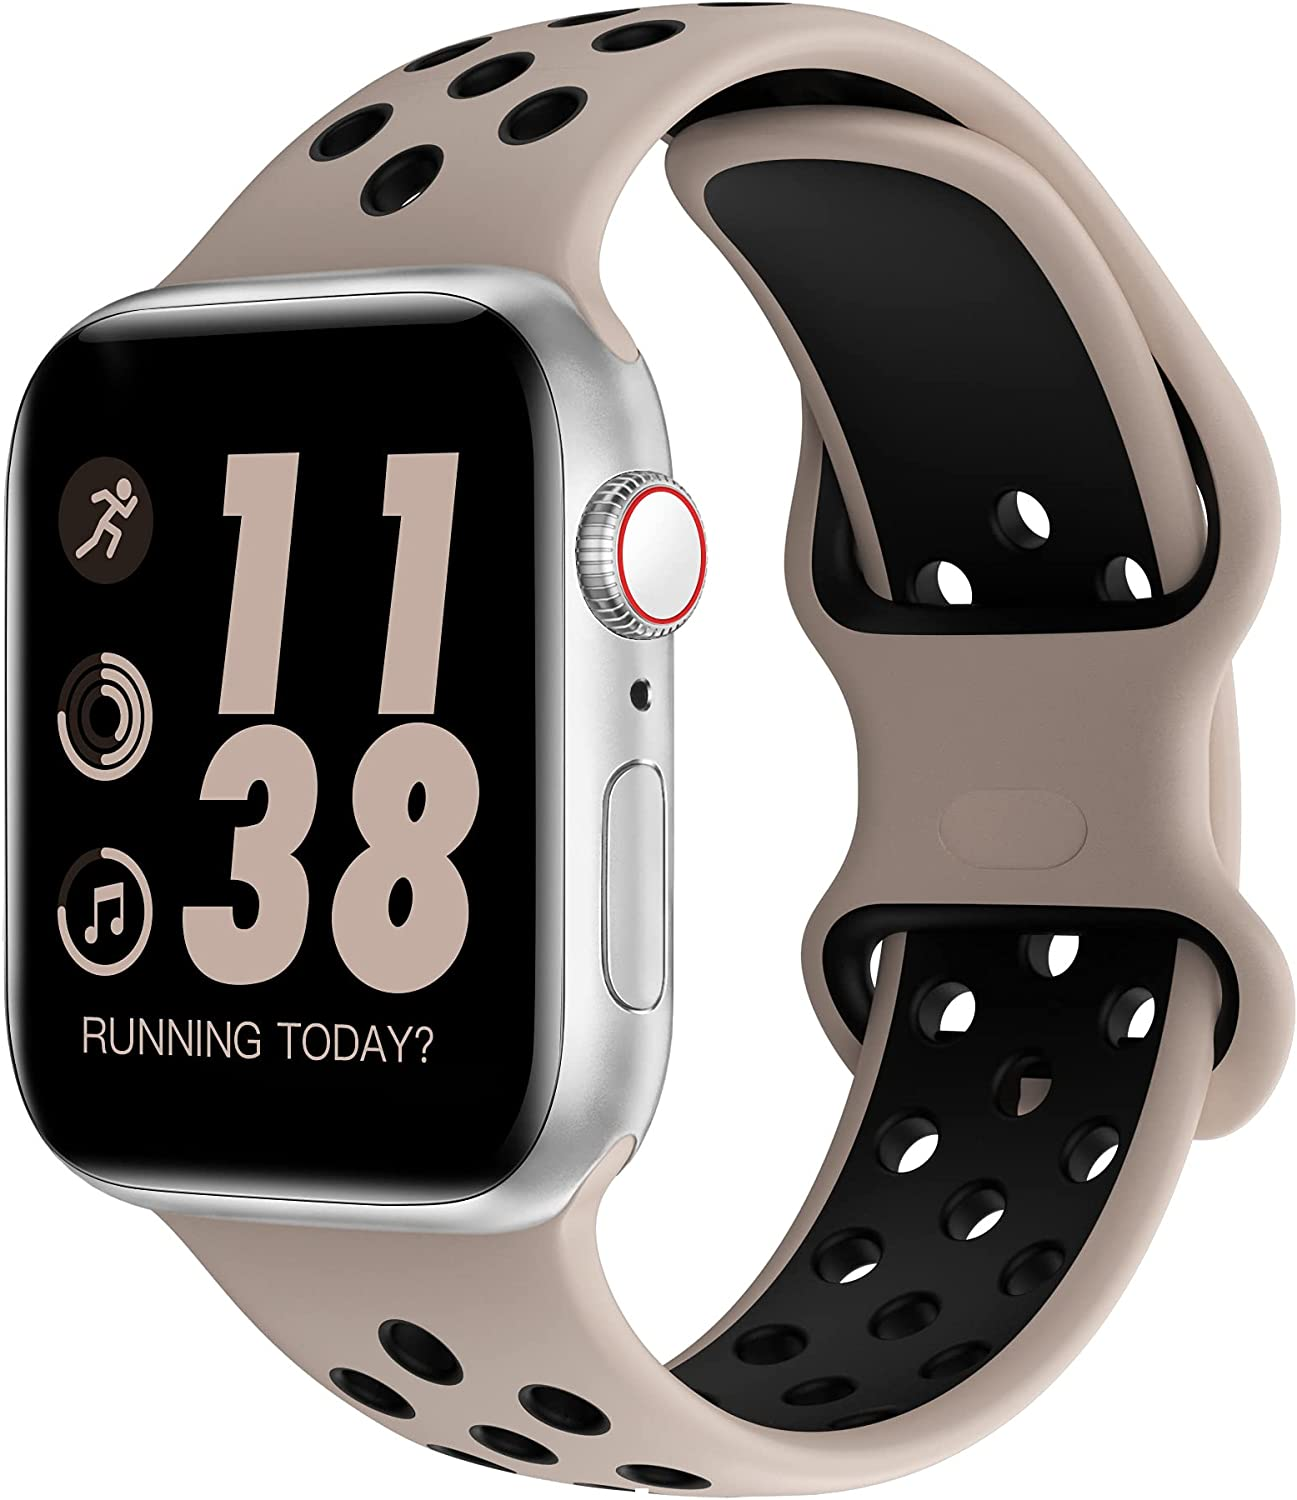 SWHAS Sport Bands Compatible with Apple Watch Bands 38mm 40mm 42mm 44mm, Soft Silicone Replacement Strap Wristband Compatible for iWatch Series 6/SE/5/4/3